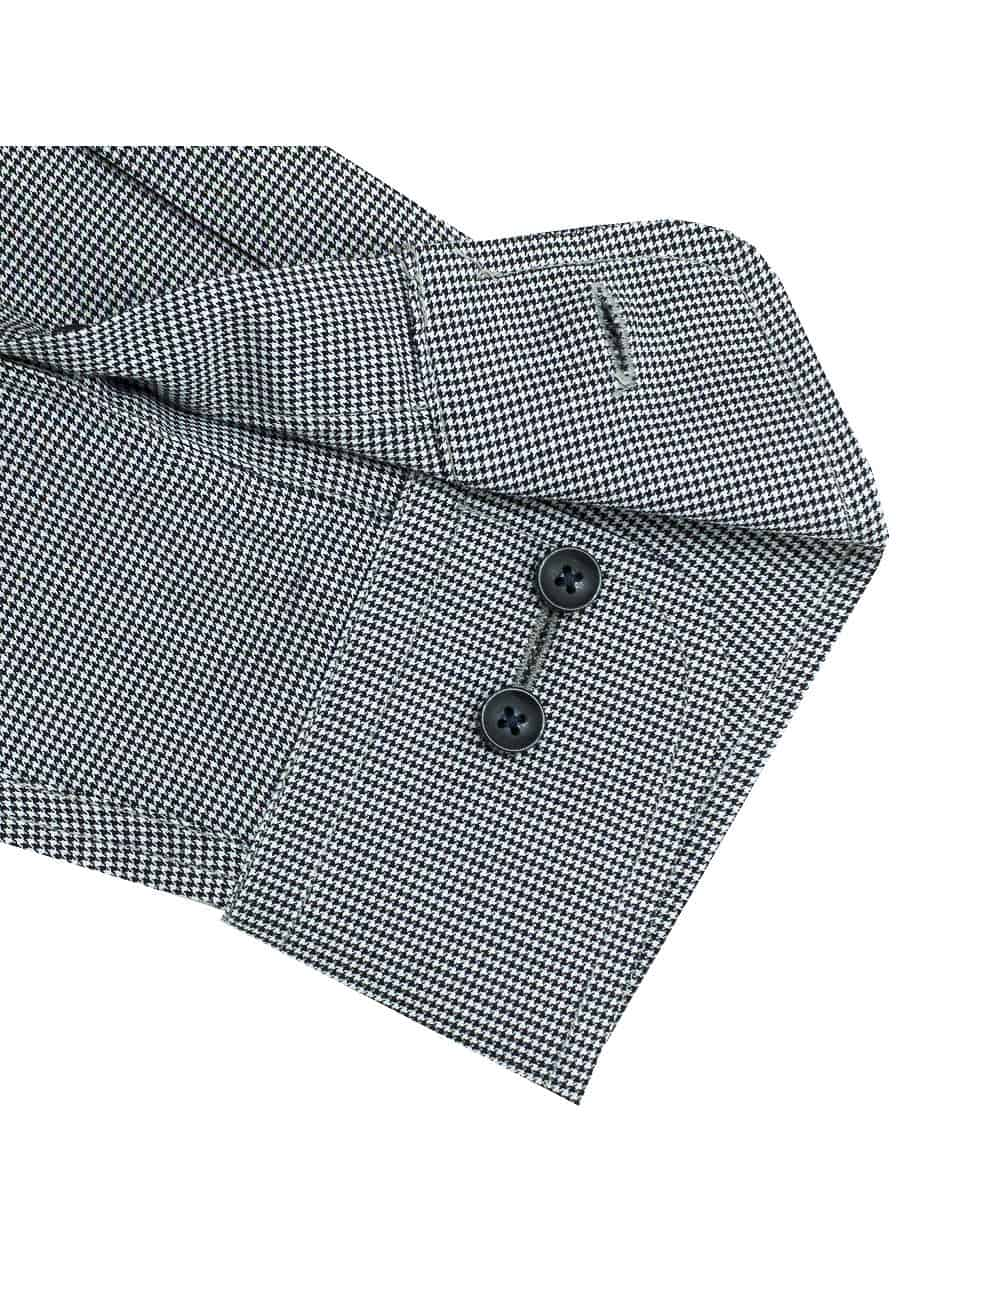 CF Black and White Houndstooth 100% Premium Cotton Easy Iron Long Sleeve Single Cuff Shirt CF2B27.4